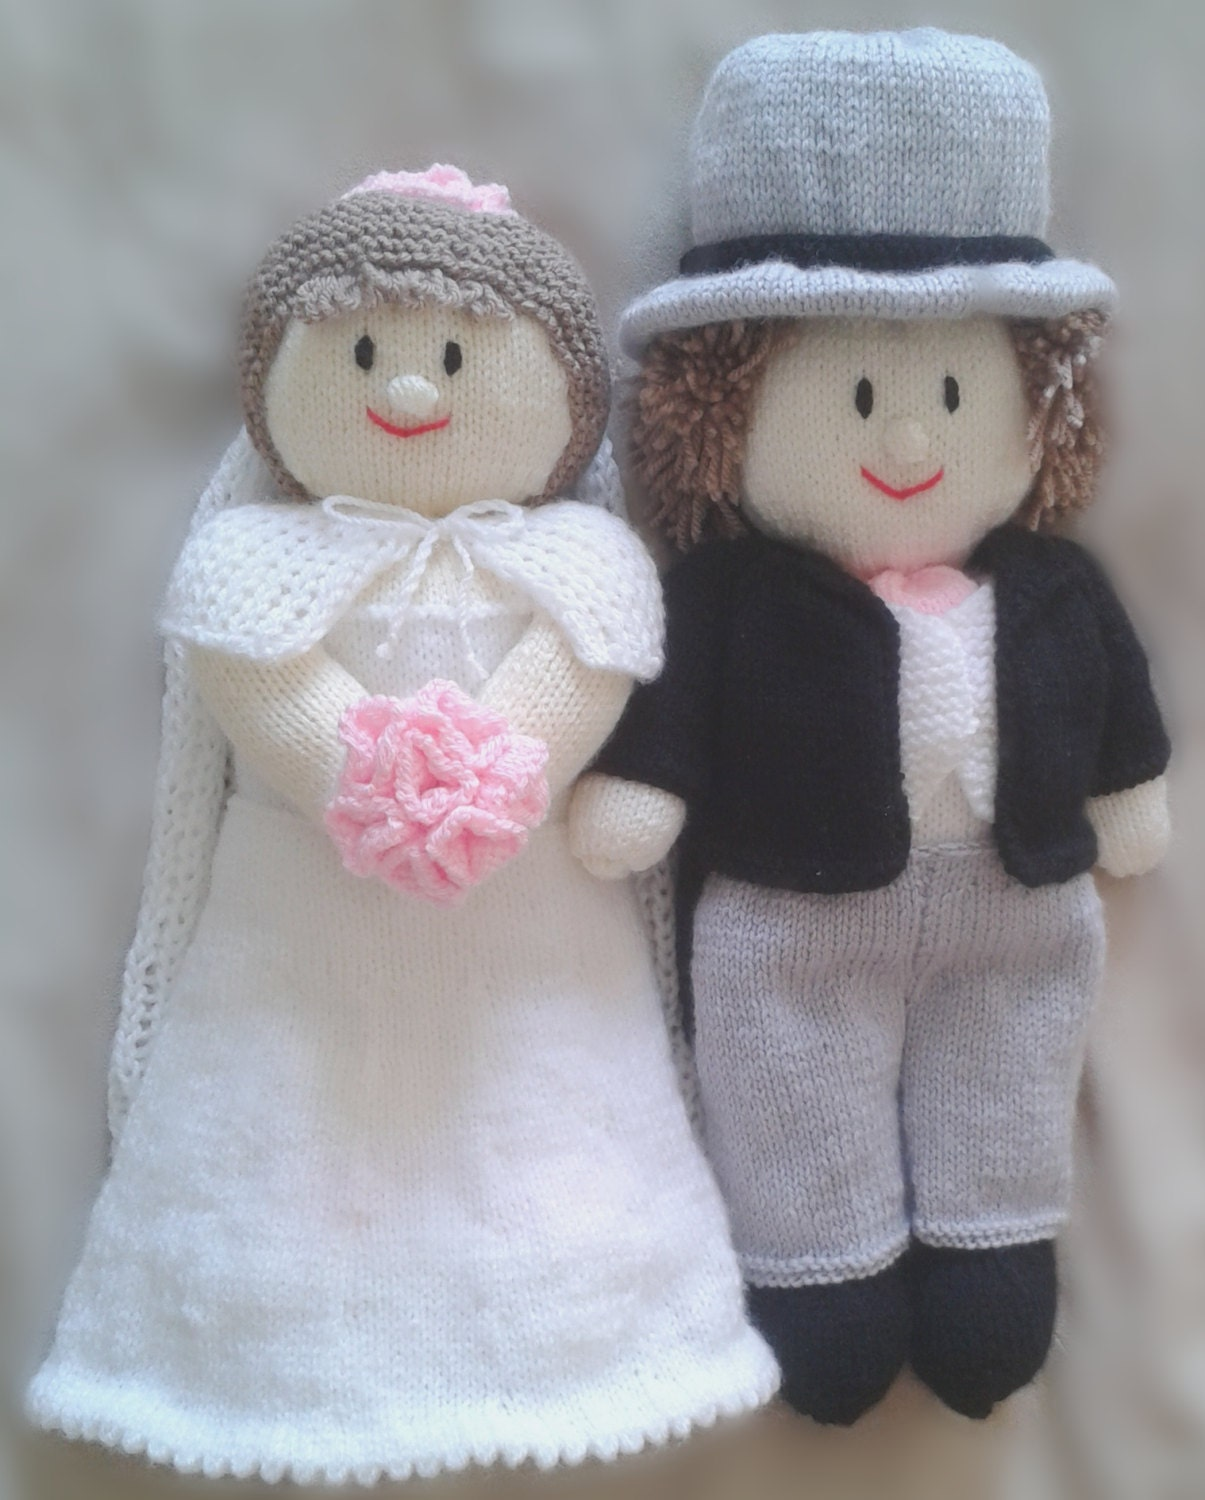 Wedding Knitting Patterns : KNITTING PATTERN Bride and Groom Wedding Doll Knitting